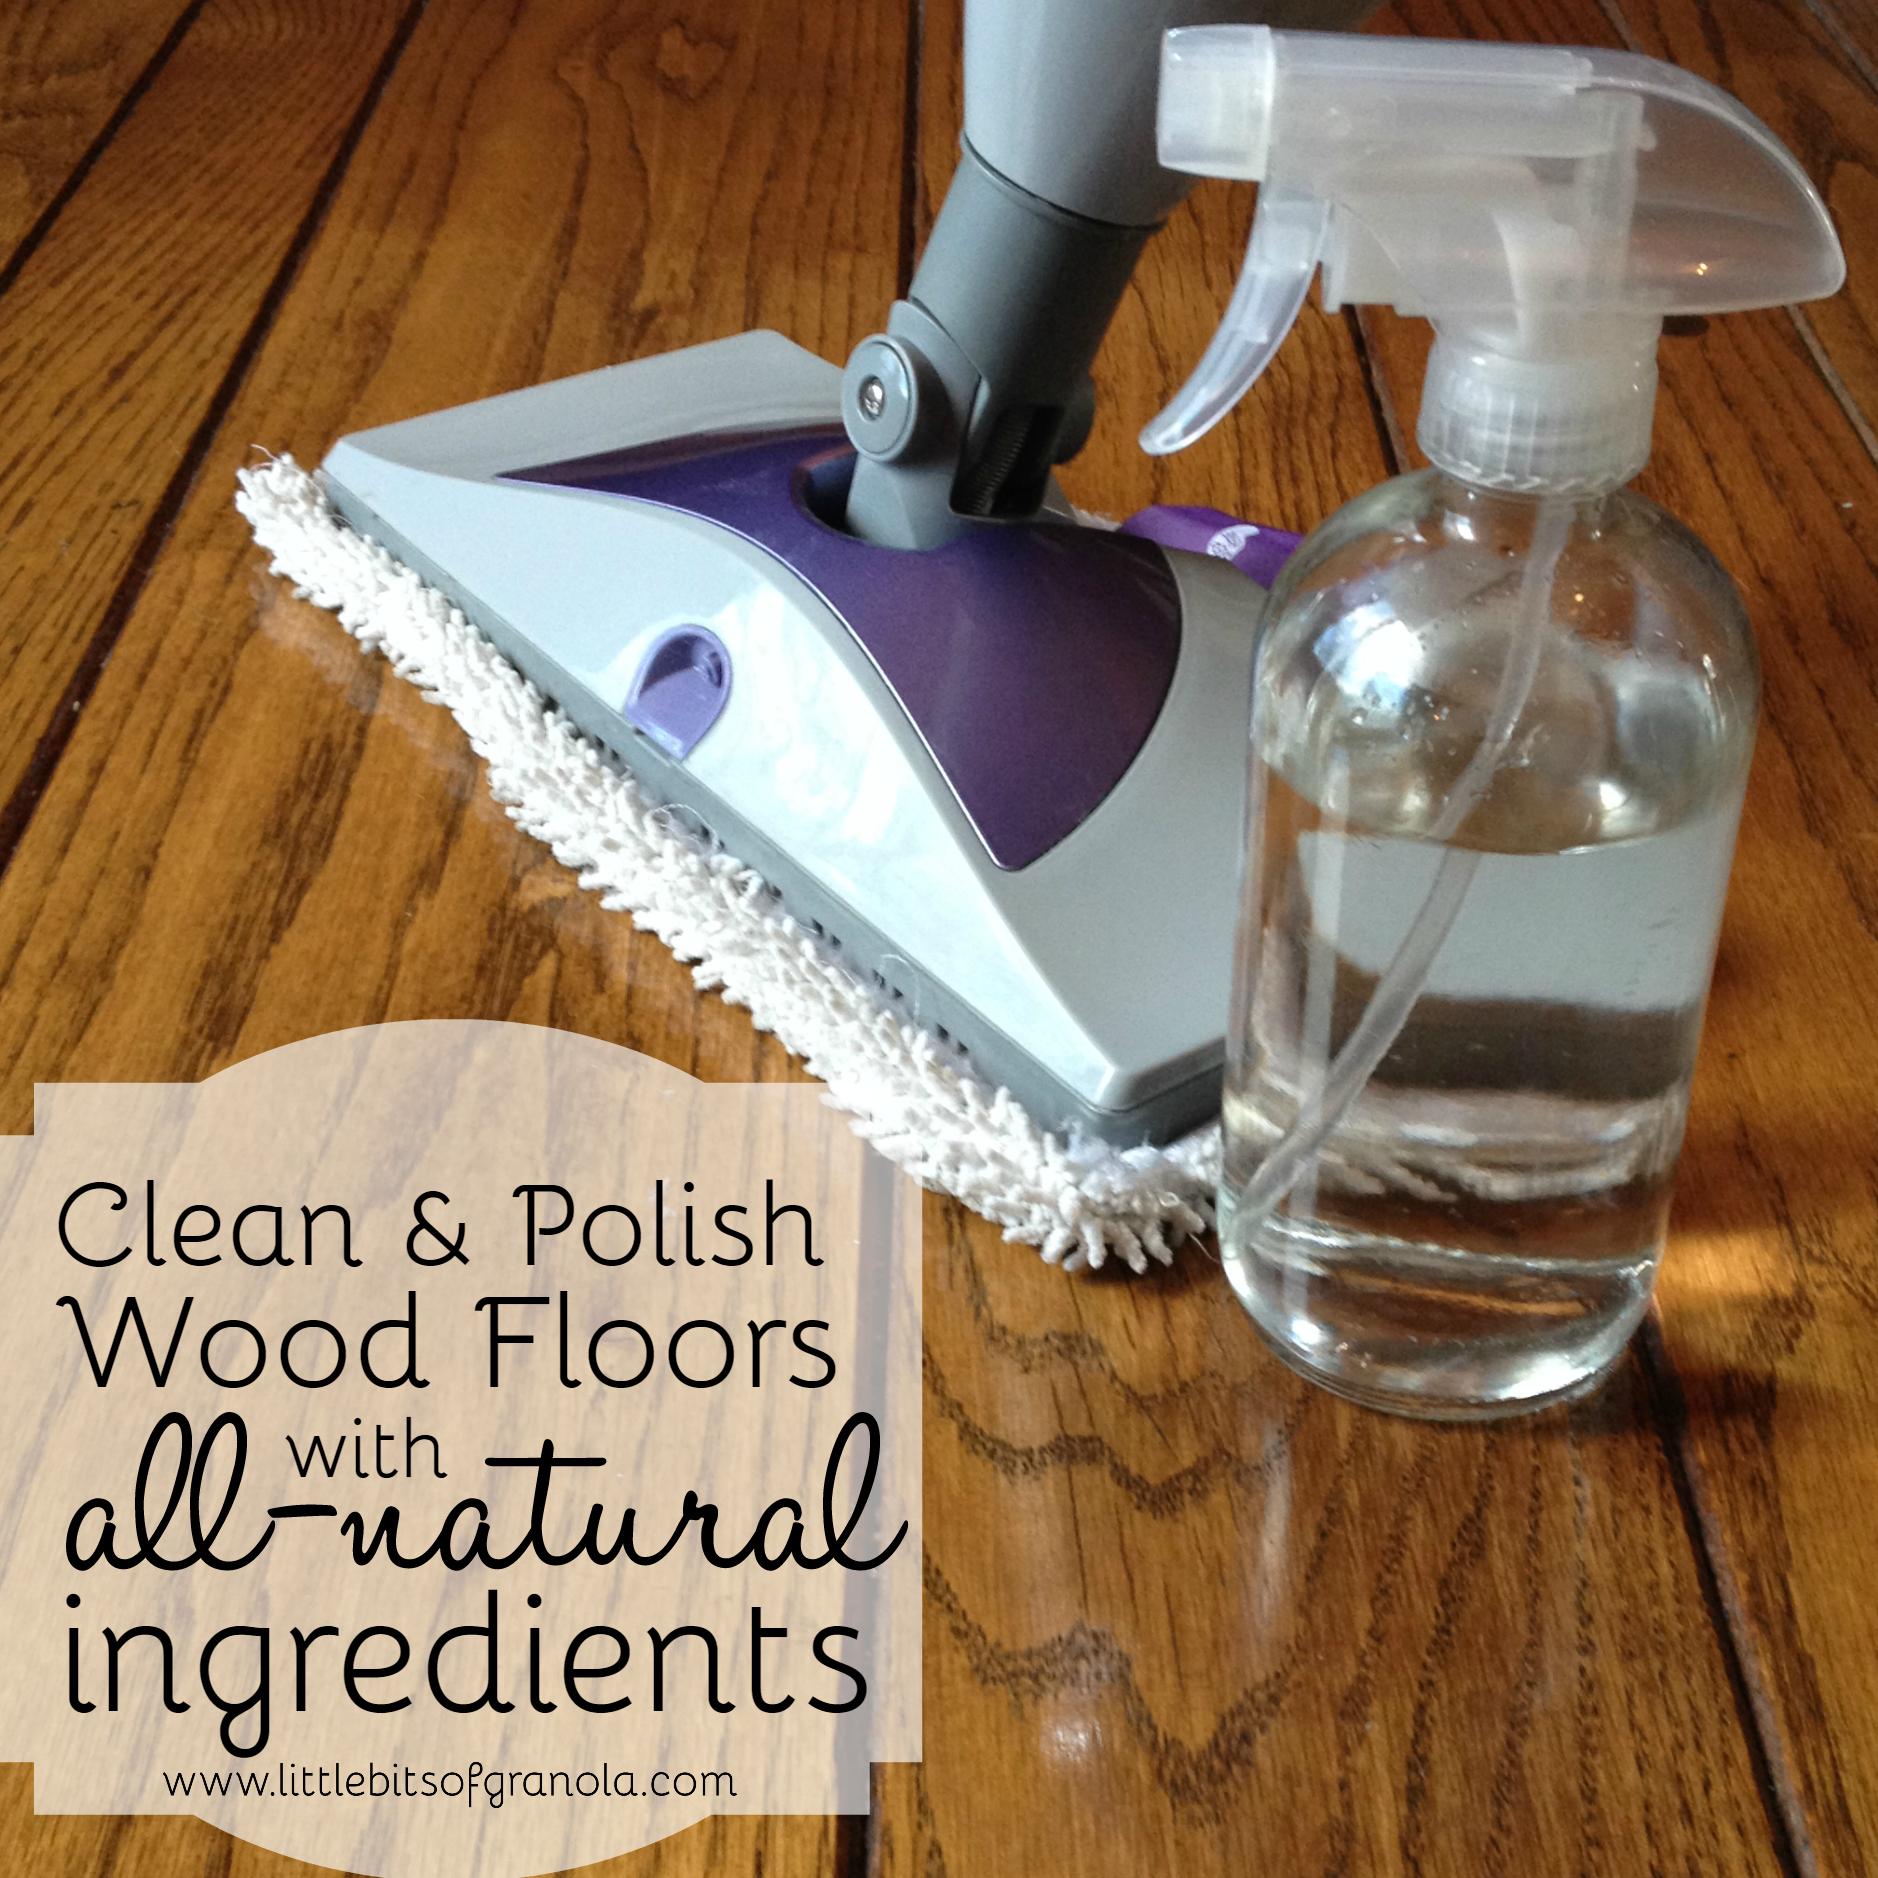 Can You Use Vinegar On Wood Floors: Simple Recipes To Clean And Polish Wood Floors